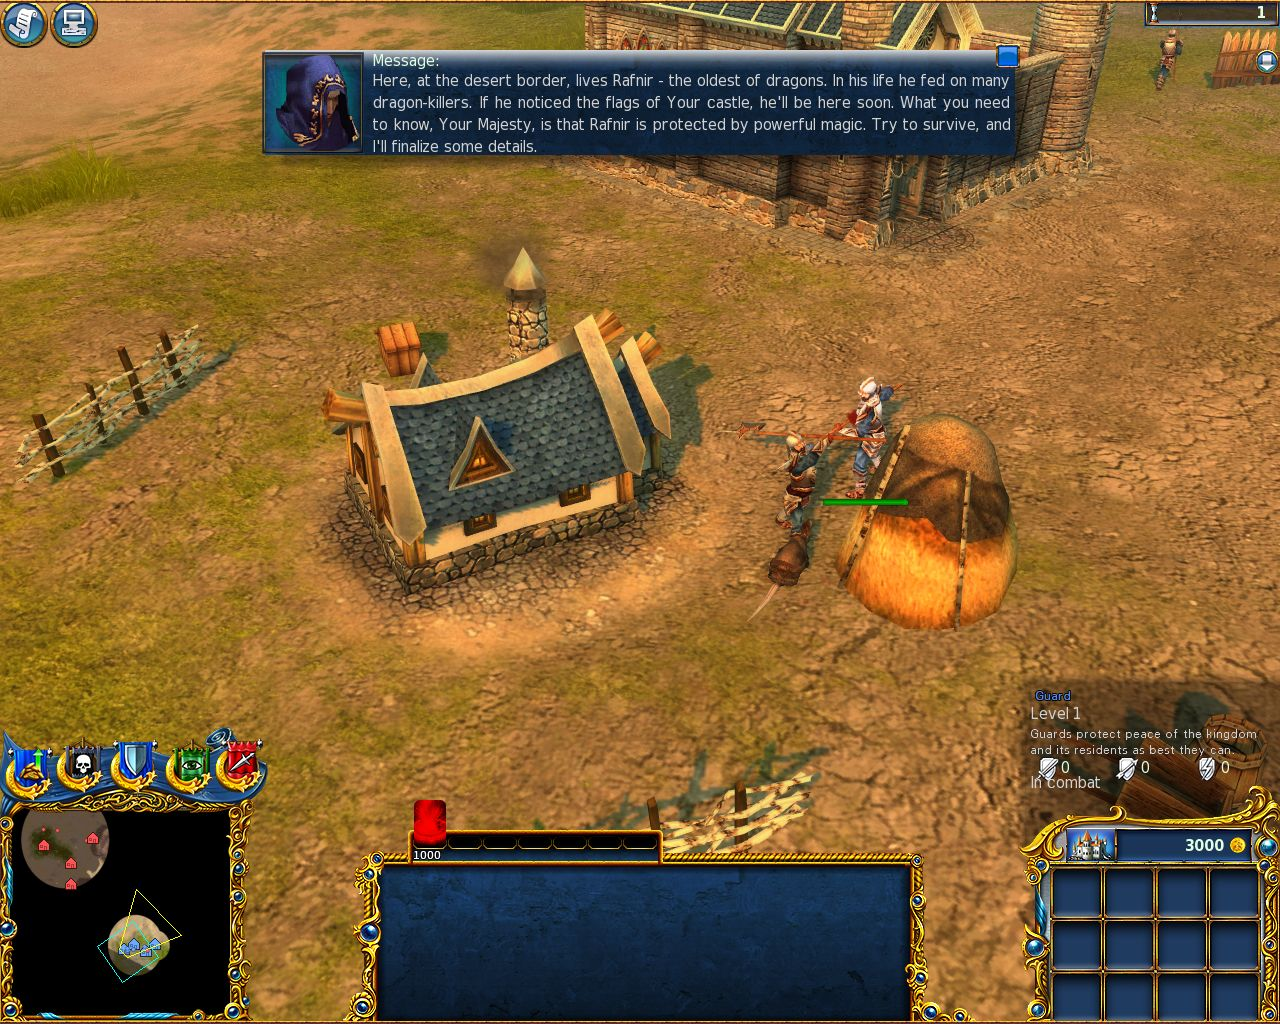 PC Game Review: Majesty 2: Kingmaker